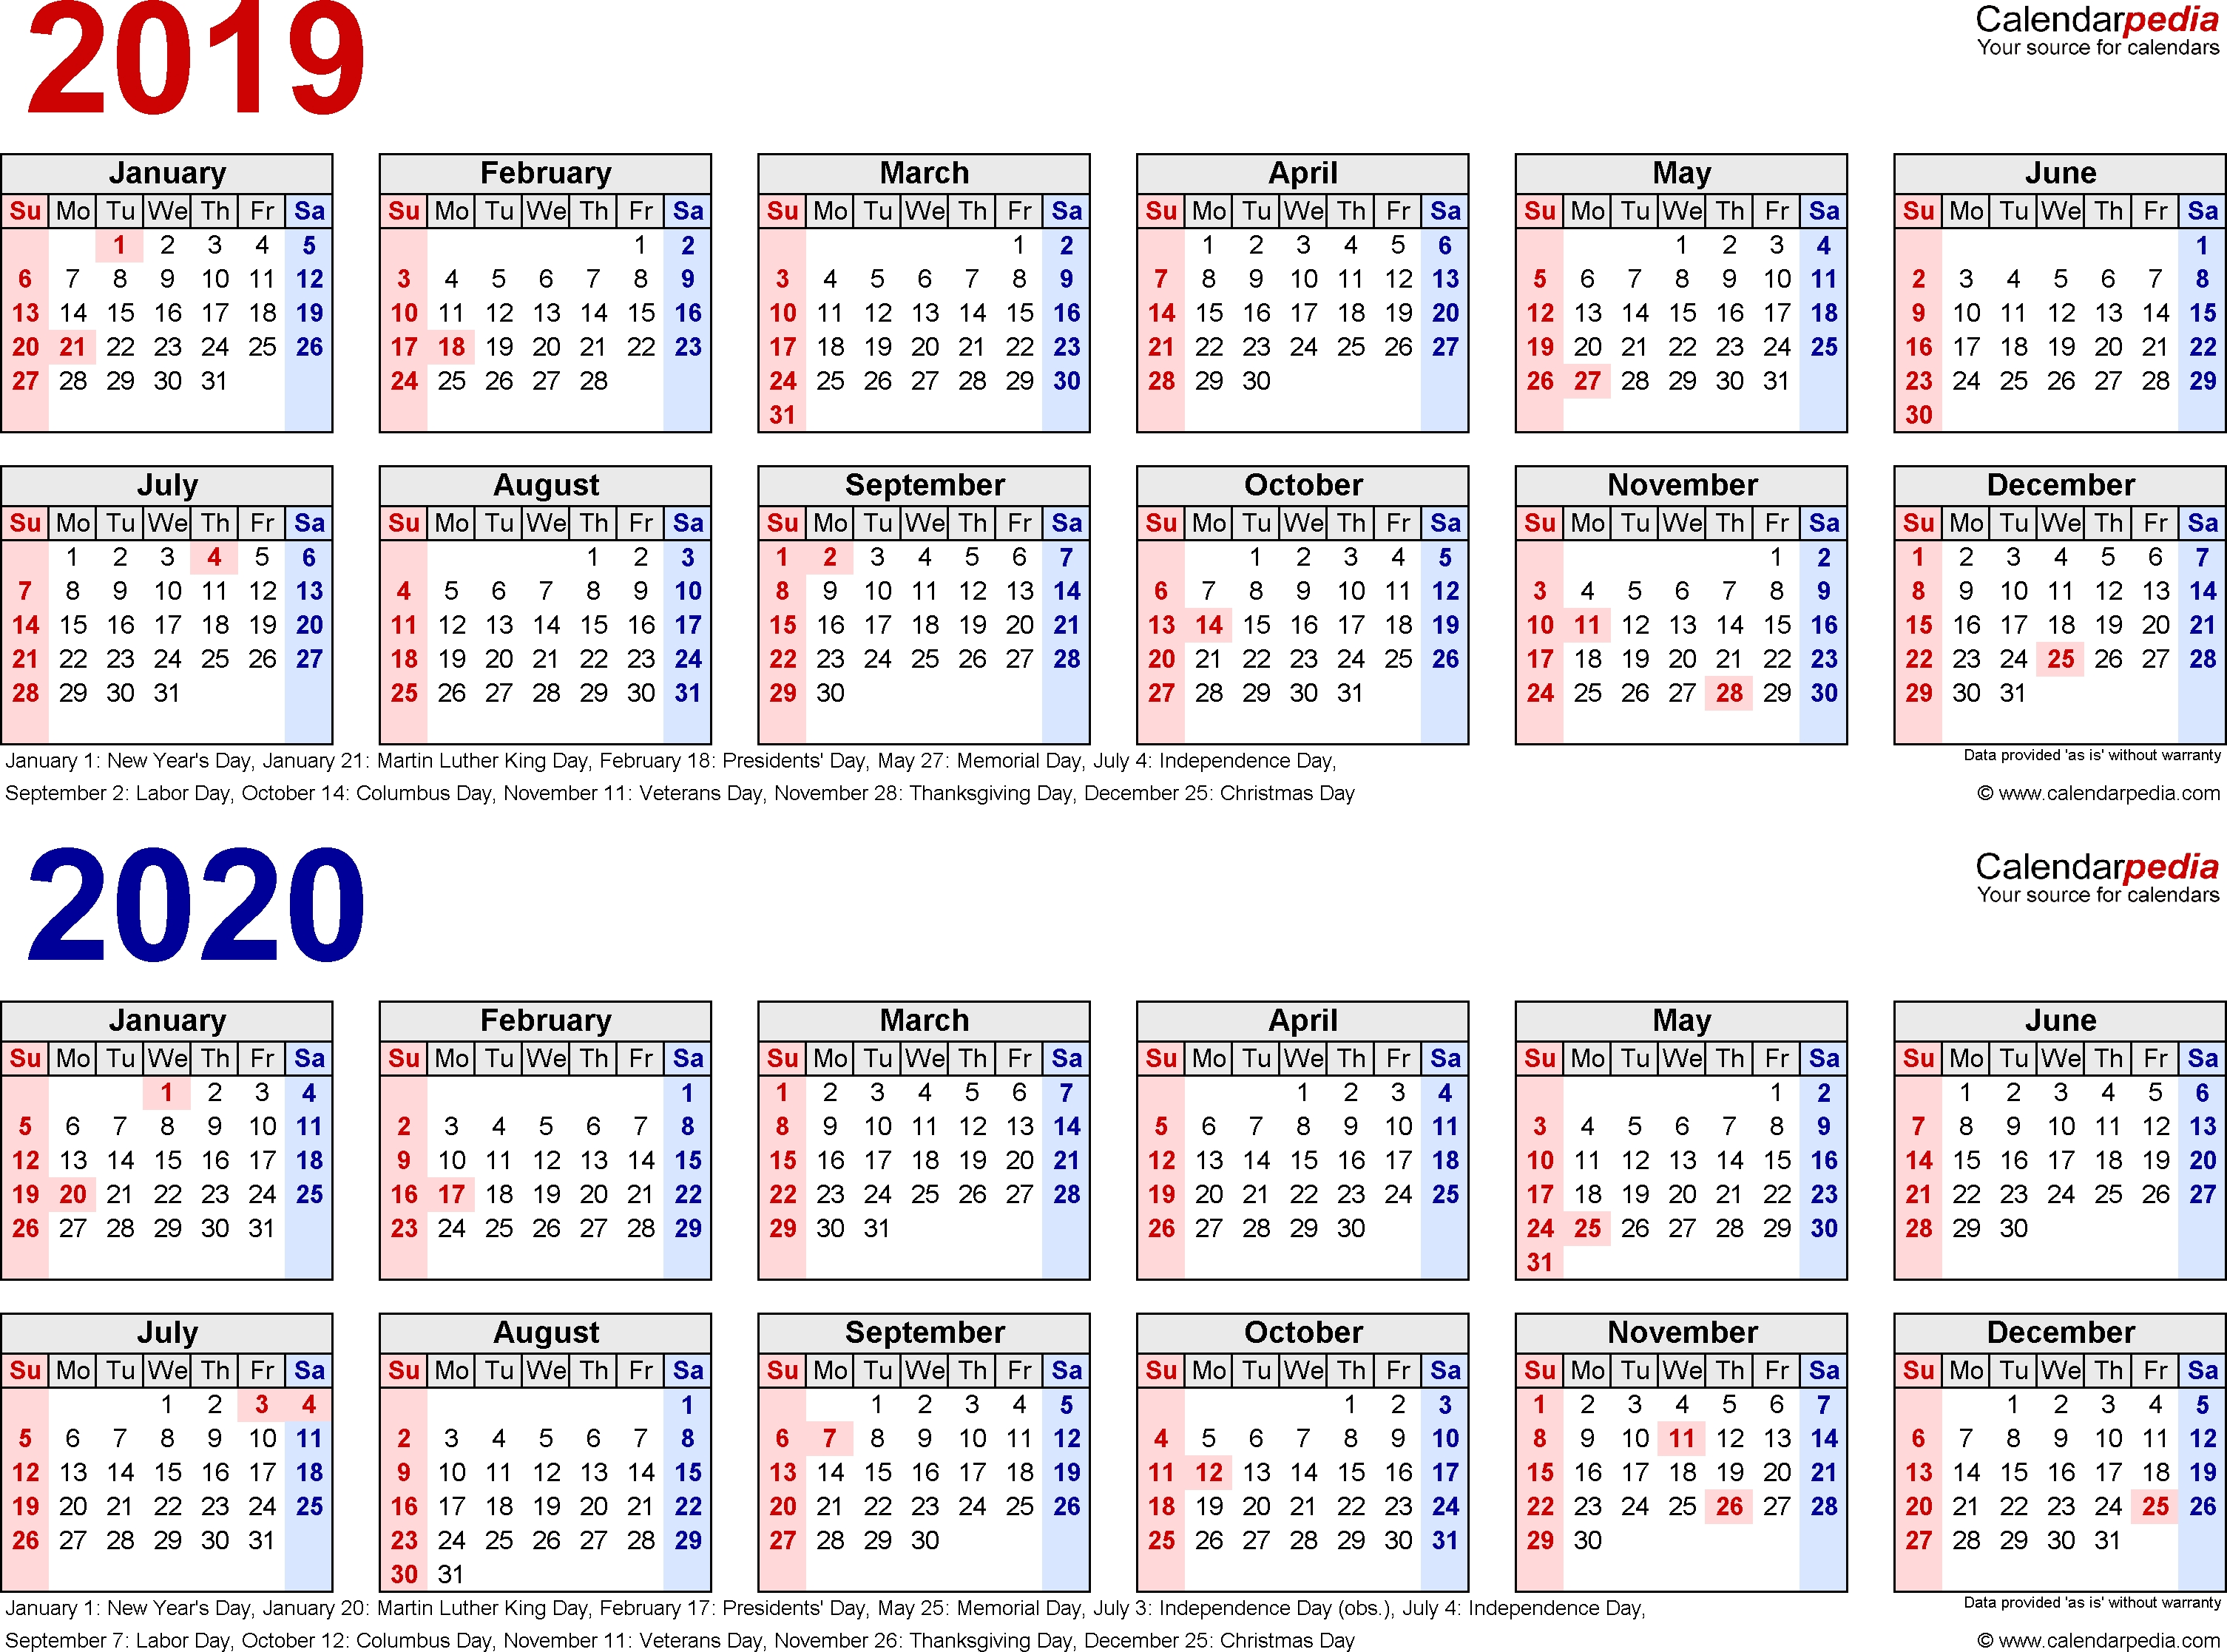 2019-2020 Calendar - Free Printable Two-Year Pdf Calendars within Pocket Printable 2019-2020 Calendar Free